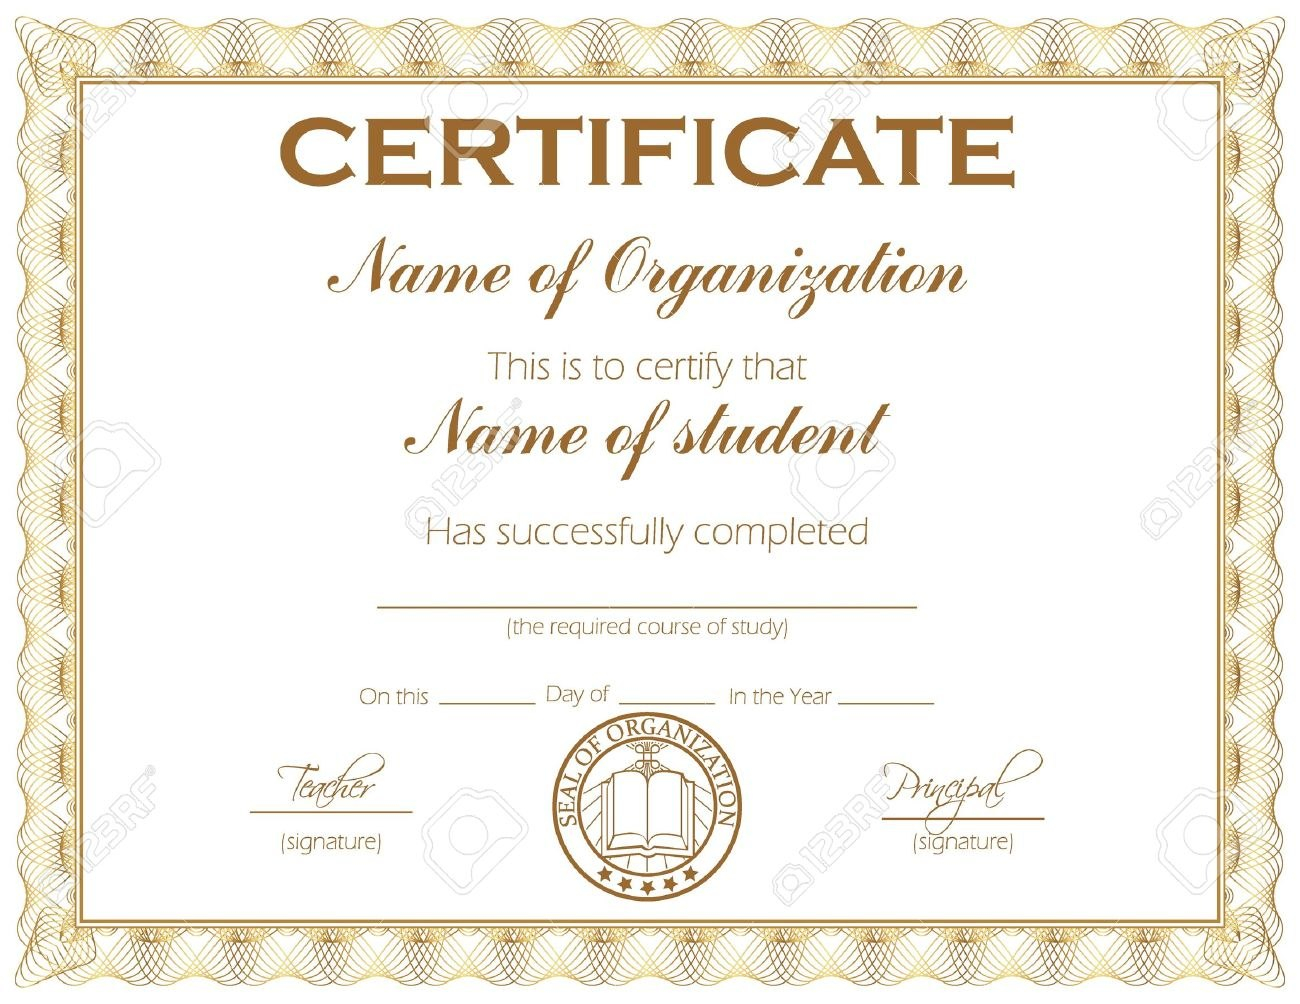 General Purpose Certificate Or Award With Sample Text That Can With Student Of The Year Award Certificate Templates